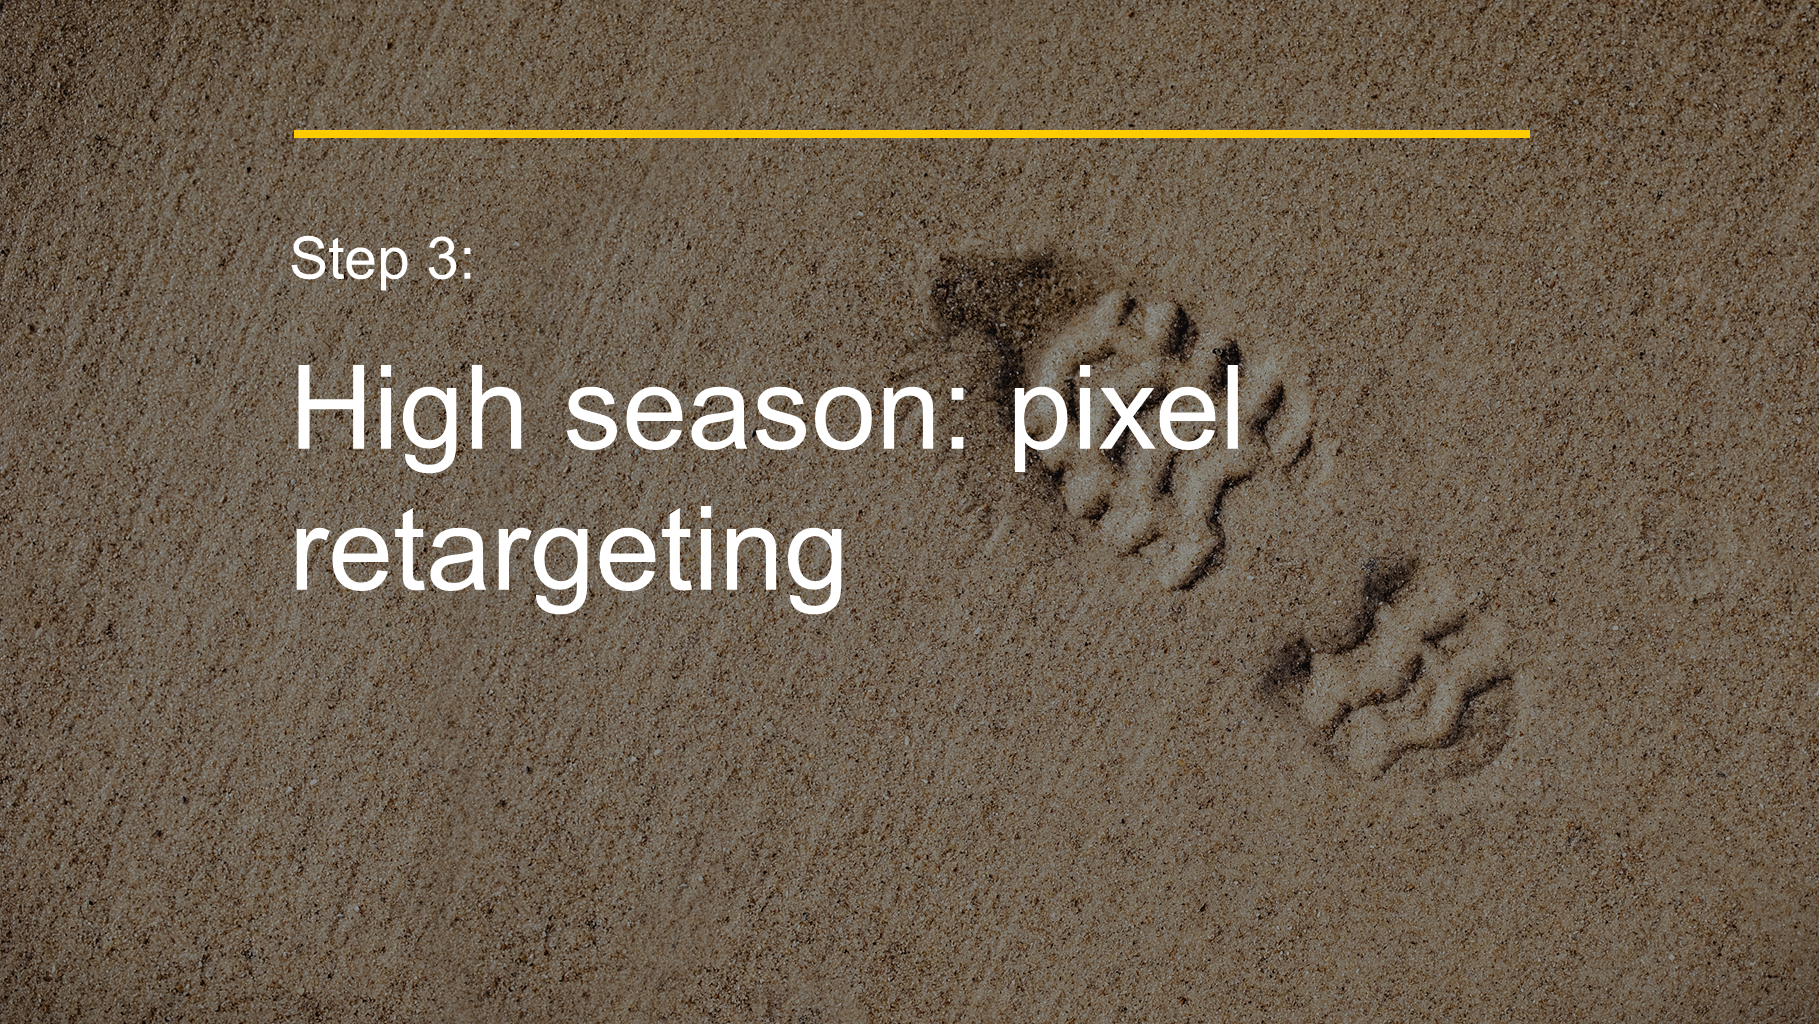 Step 3: High season: pixel retargeting